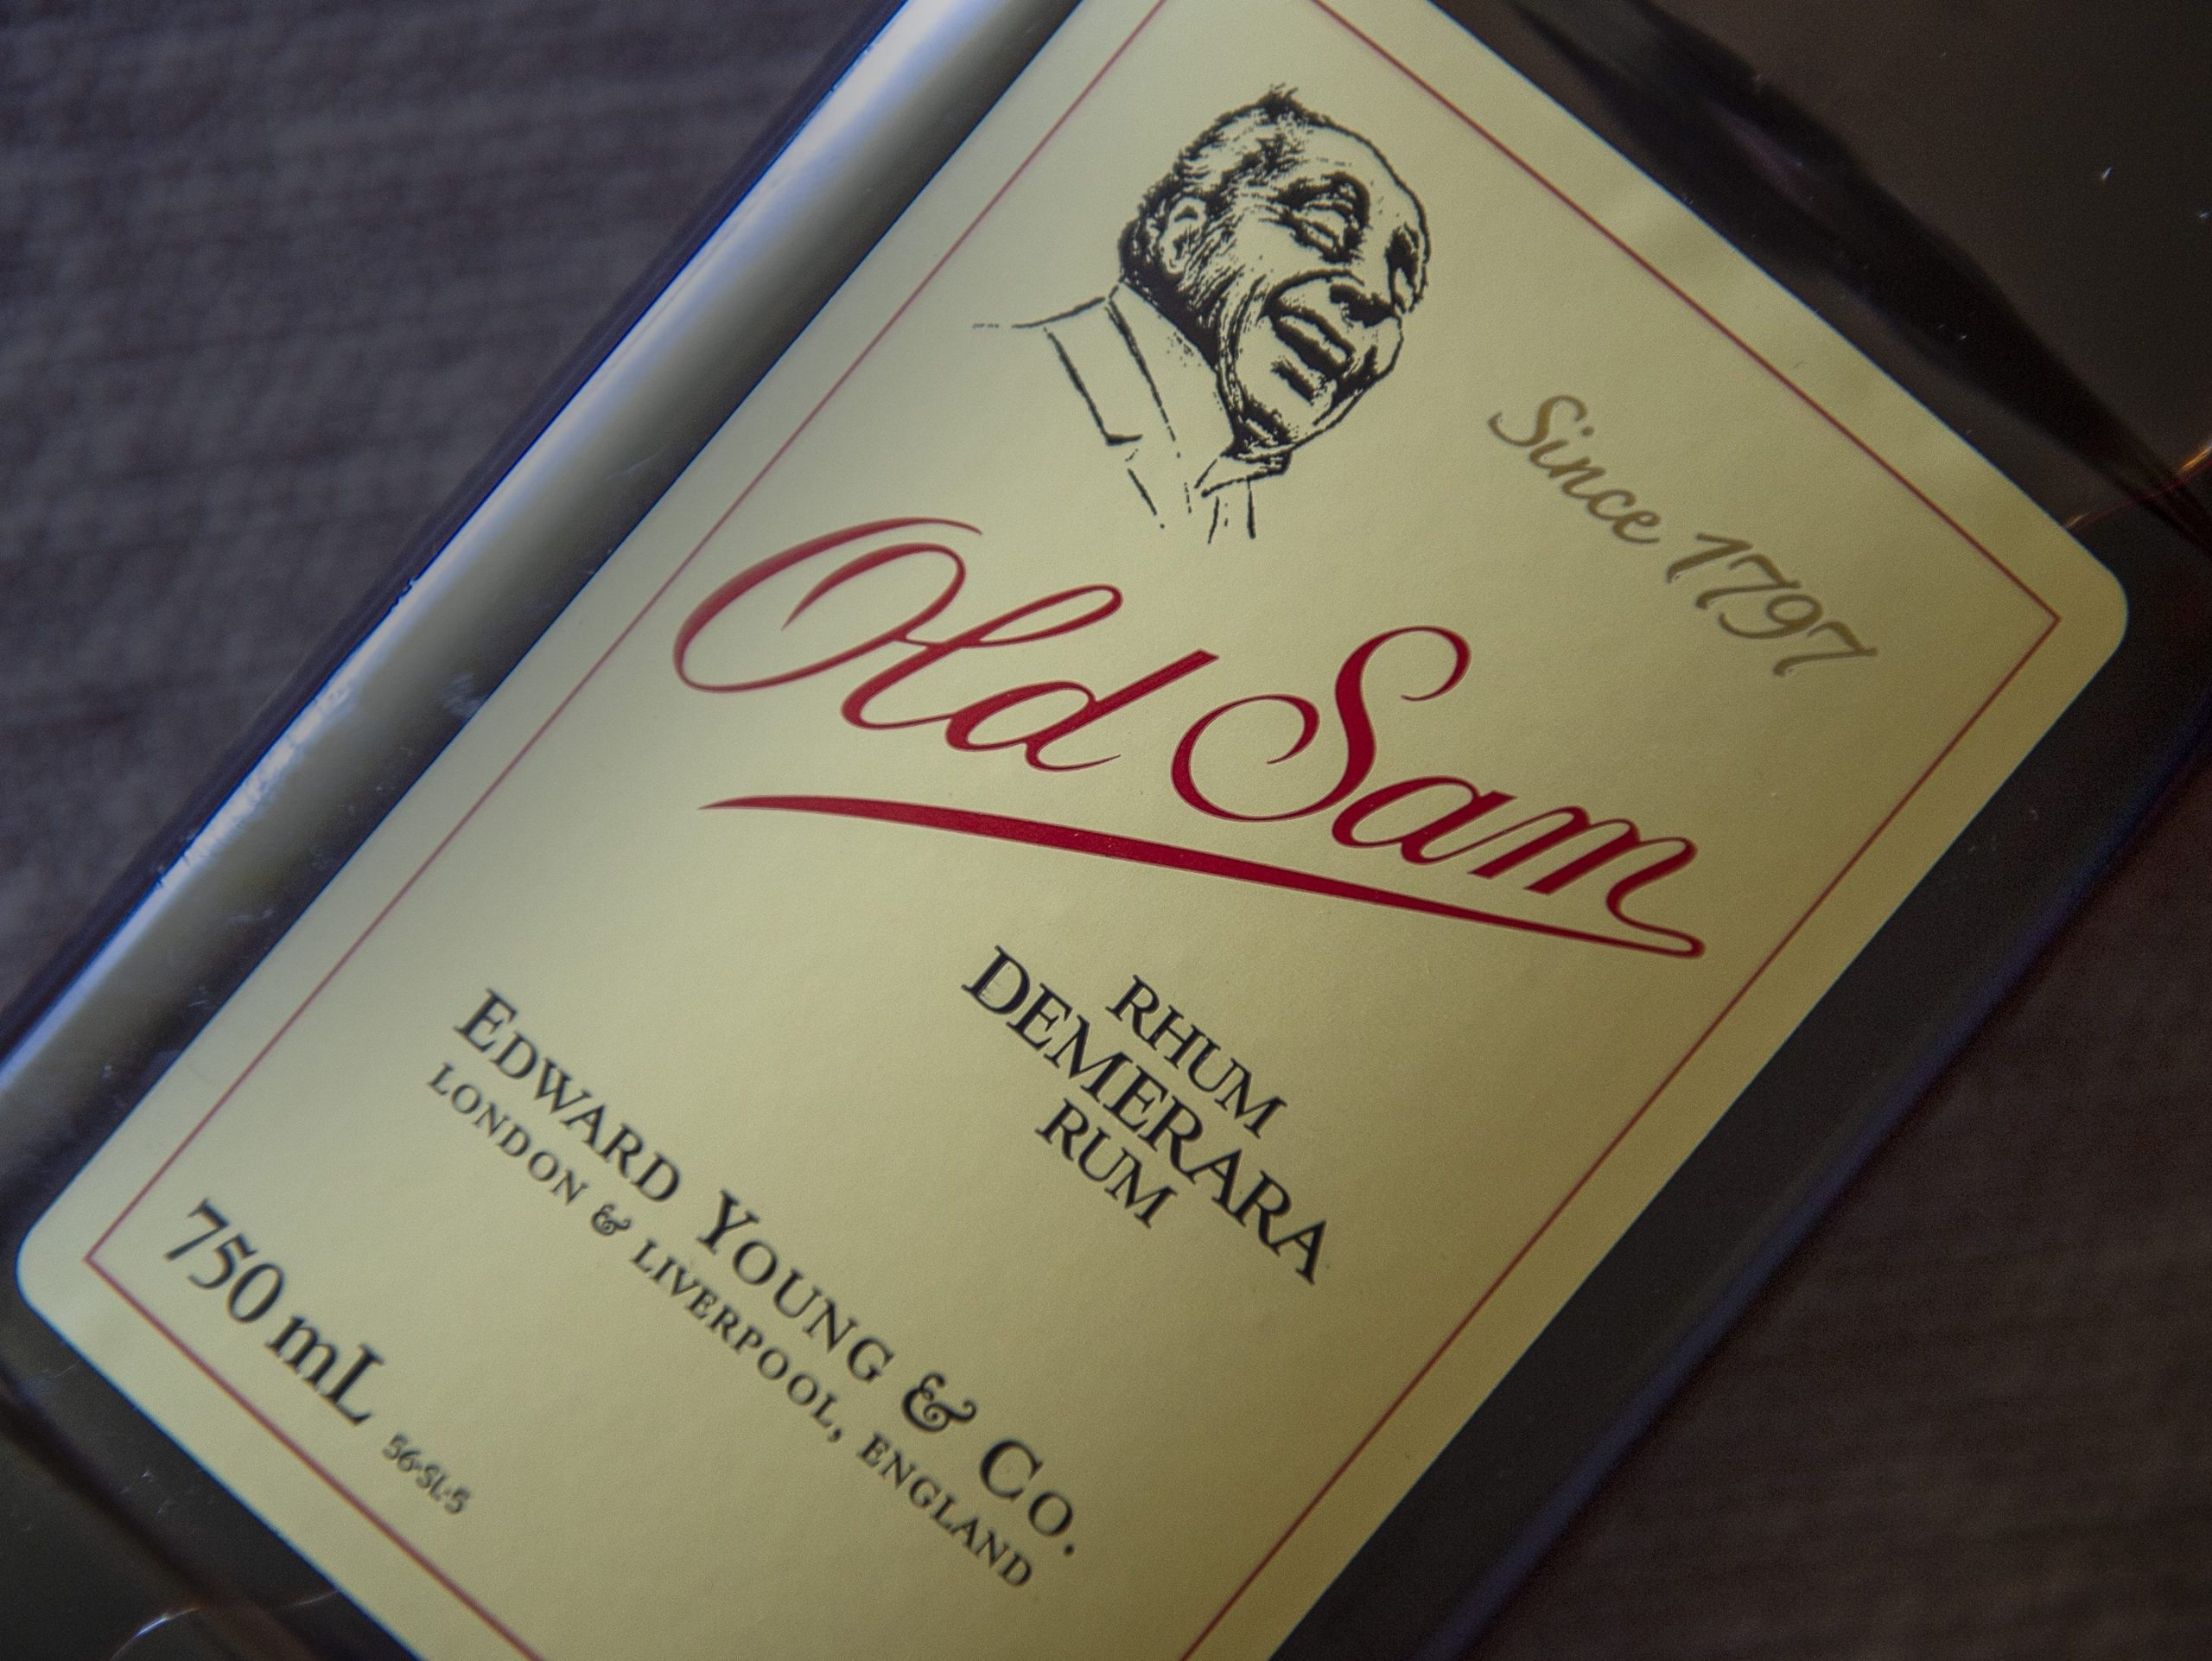 N.l. Liquor Corp. Reviewing Old Sam Rum In Light Of Racist Branding Concerns photo